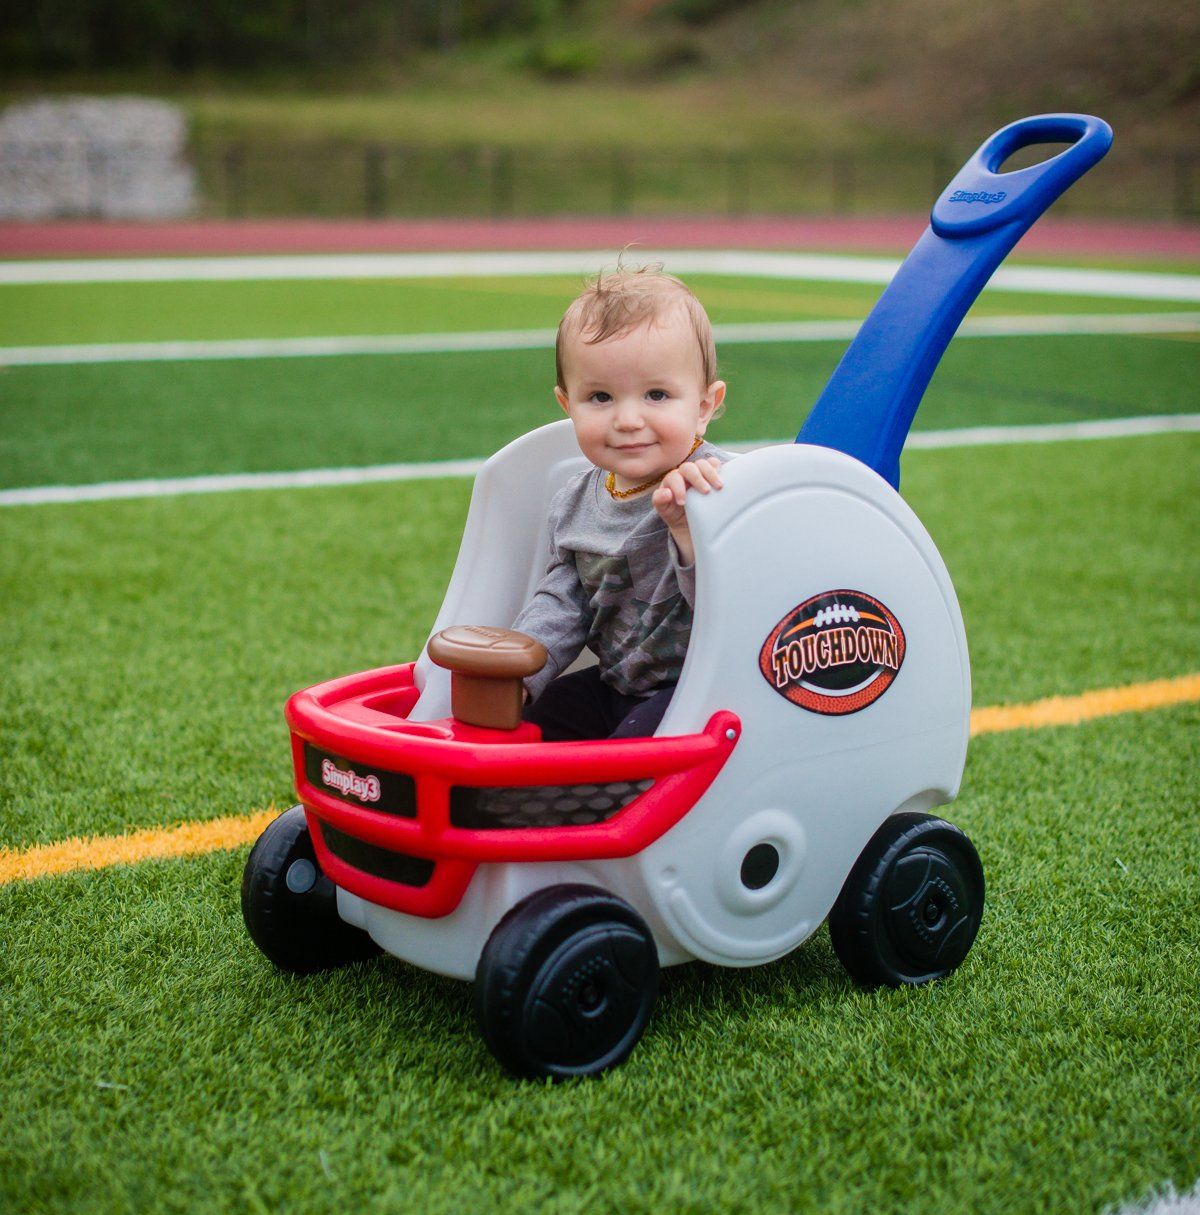 Ditch The Stroller - Fun Ways To Hit The Town This Fall 3 Daily Mom Parents Portal